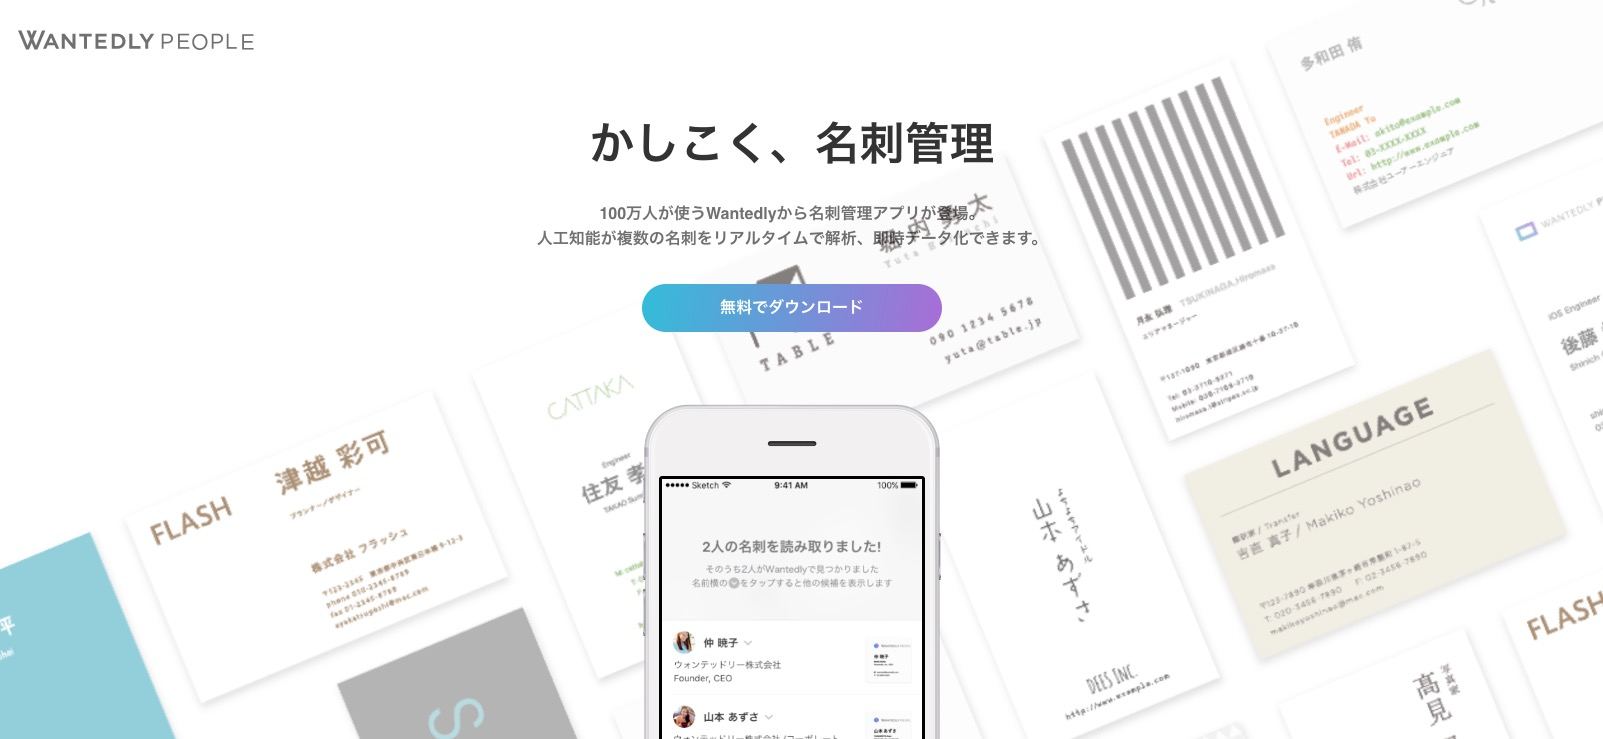 Wantedlyが名刺管理アプリをリリース:Wantedly People (ウォンテッドリーピープル)